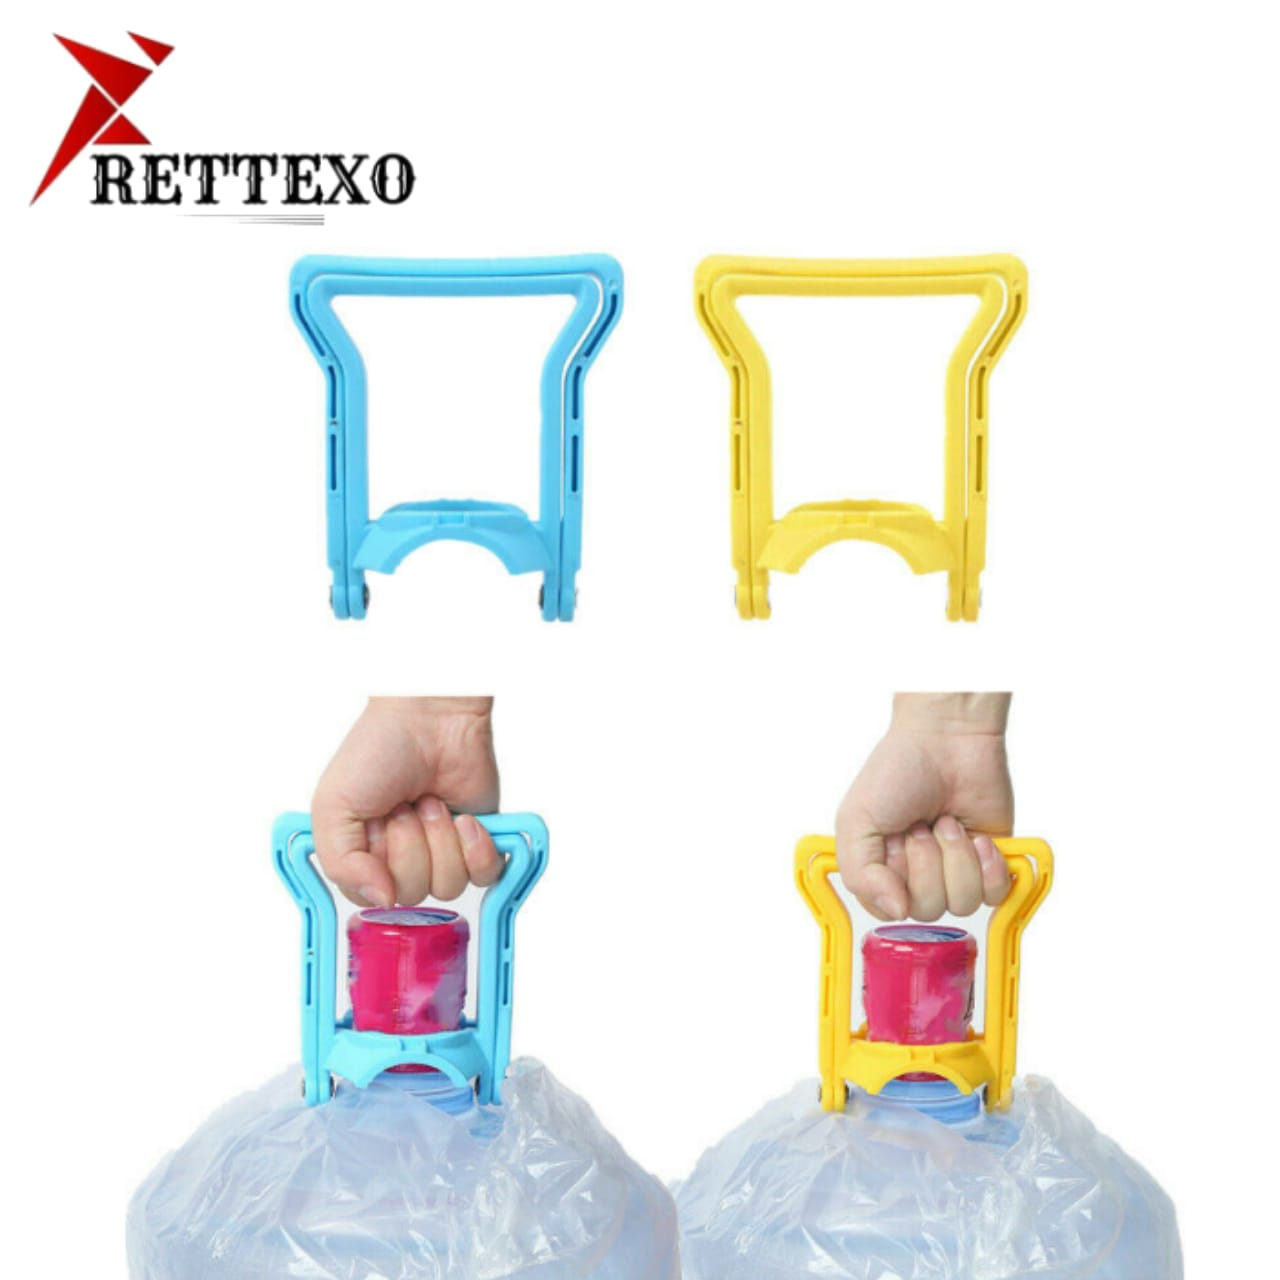 19 ltrs Water Bottle Handle Lifter - Easy Lifting Water Bottle Carrier - Water Bottle Handle - Double Handed Water Bottle Handle